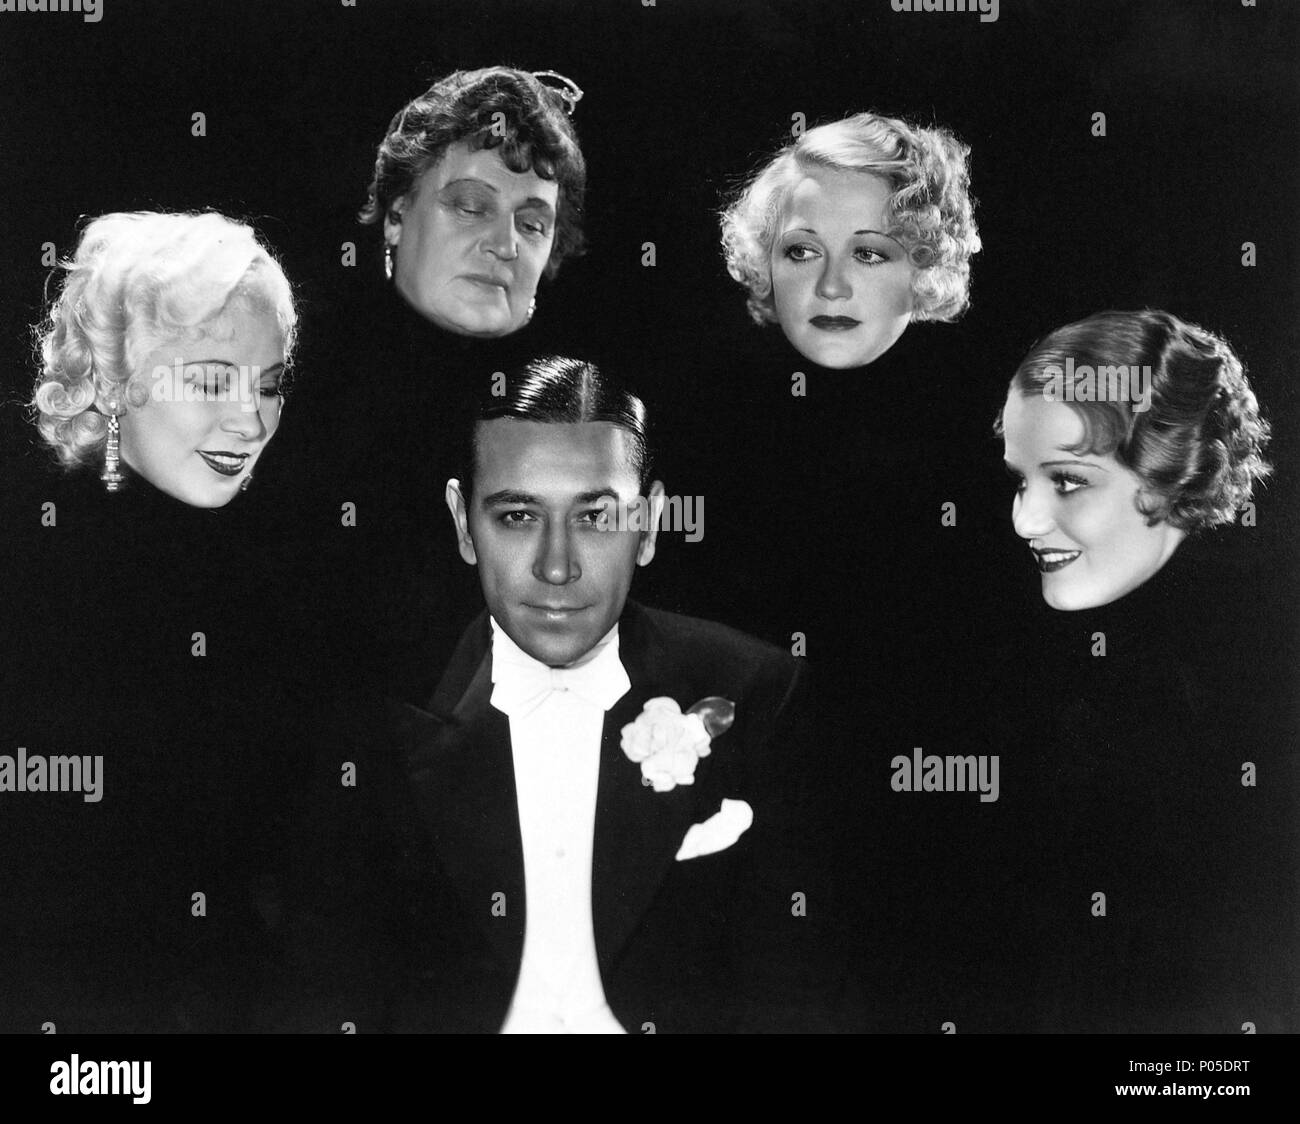 Original Film Title: NIGHT AFTER NIGHT.  English Title: NIGHT AFTER NIGHT.  Film Director: ARCHIE MAYO.  Year: 1932.  Stars: GEORGE RAFT; CONSTANCE CUMMINGS; MAE WEST; WYNNE GIBSON; ALISON SKIPWORTH. Credit: PARAMOUNT PICTURES / Album - Stock Image